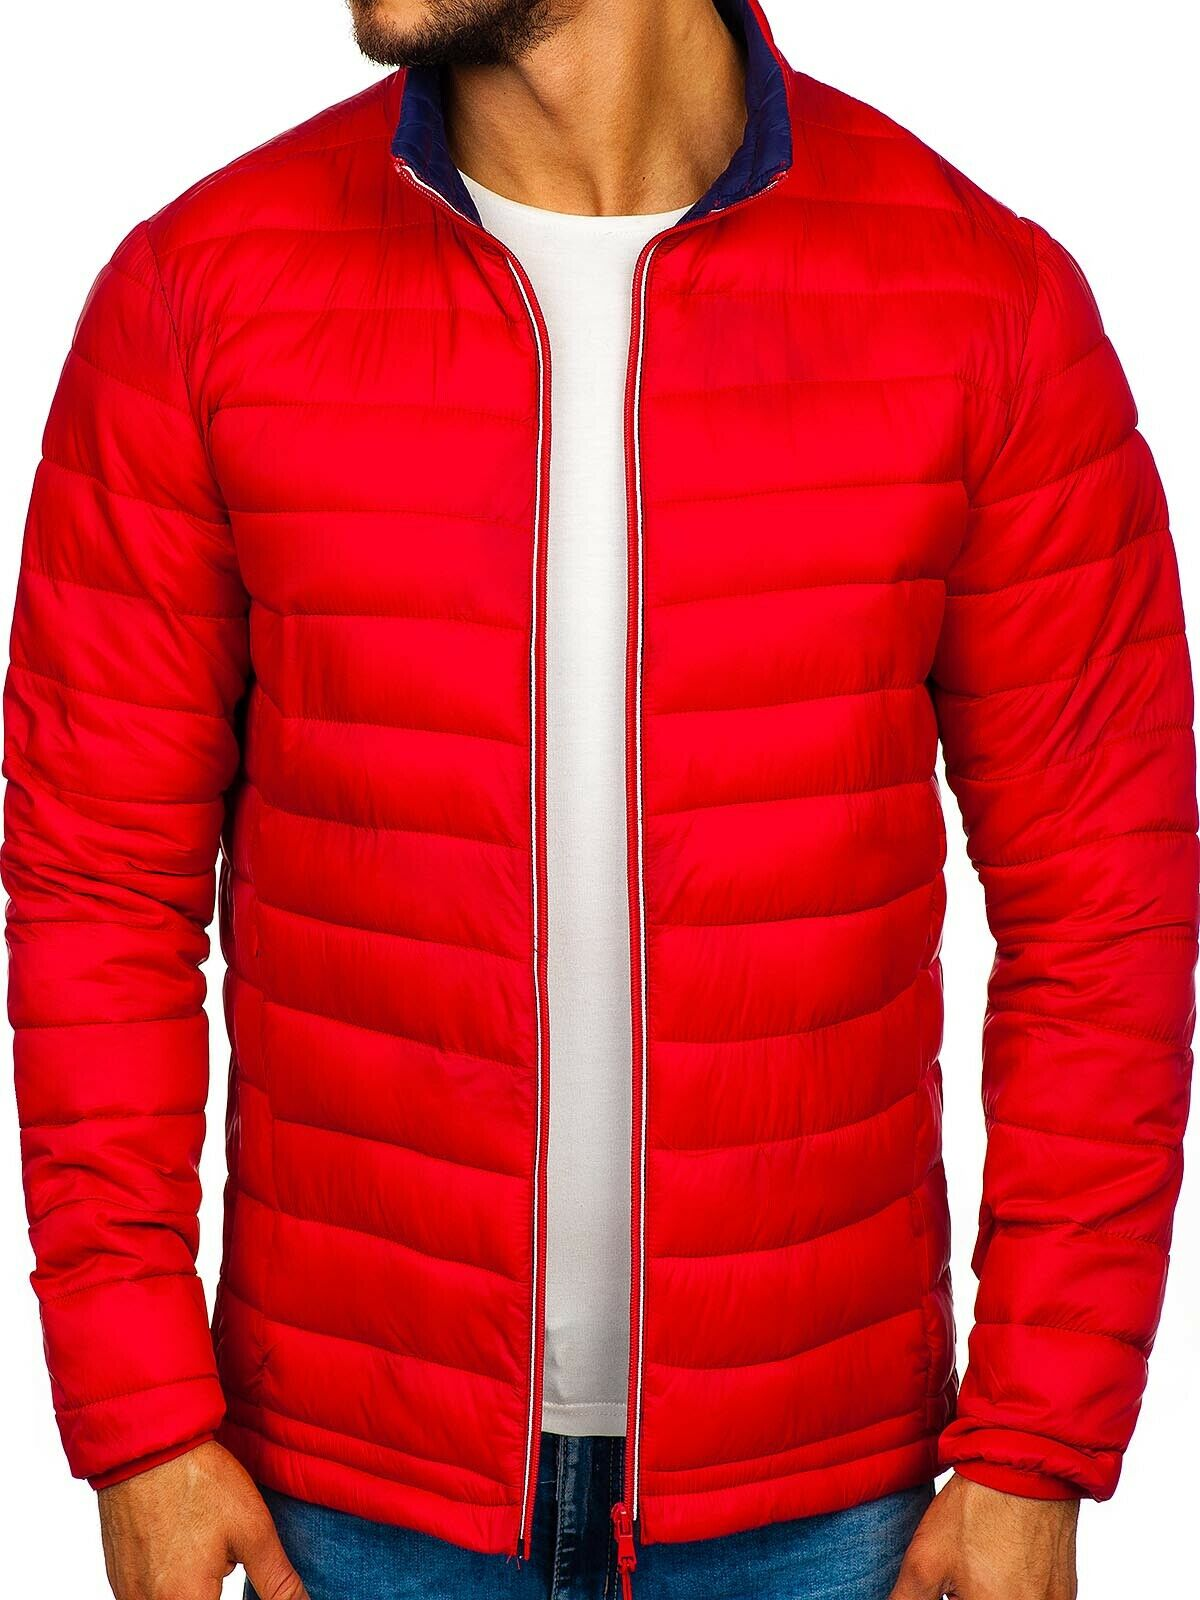 J.Style LY1017 Rot